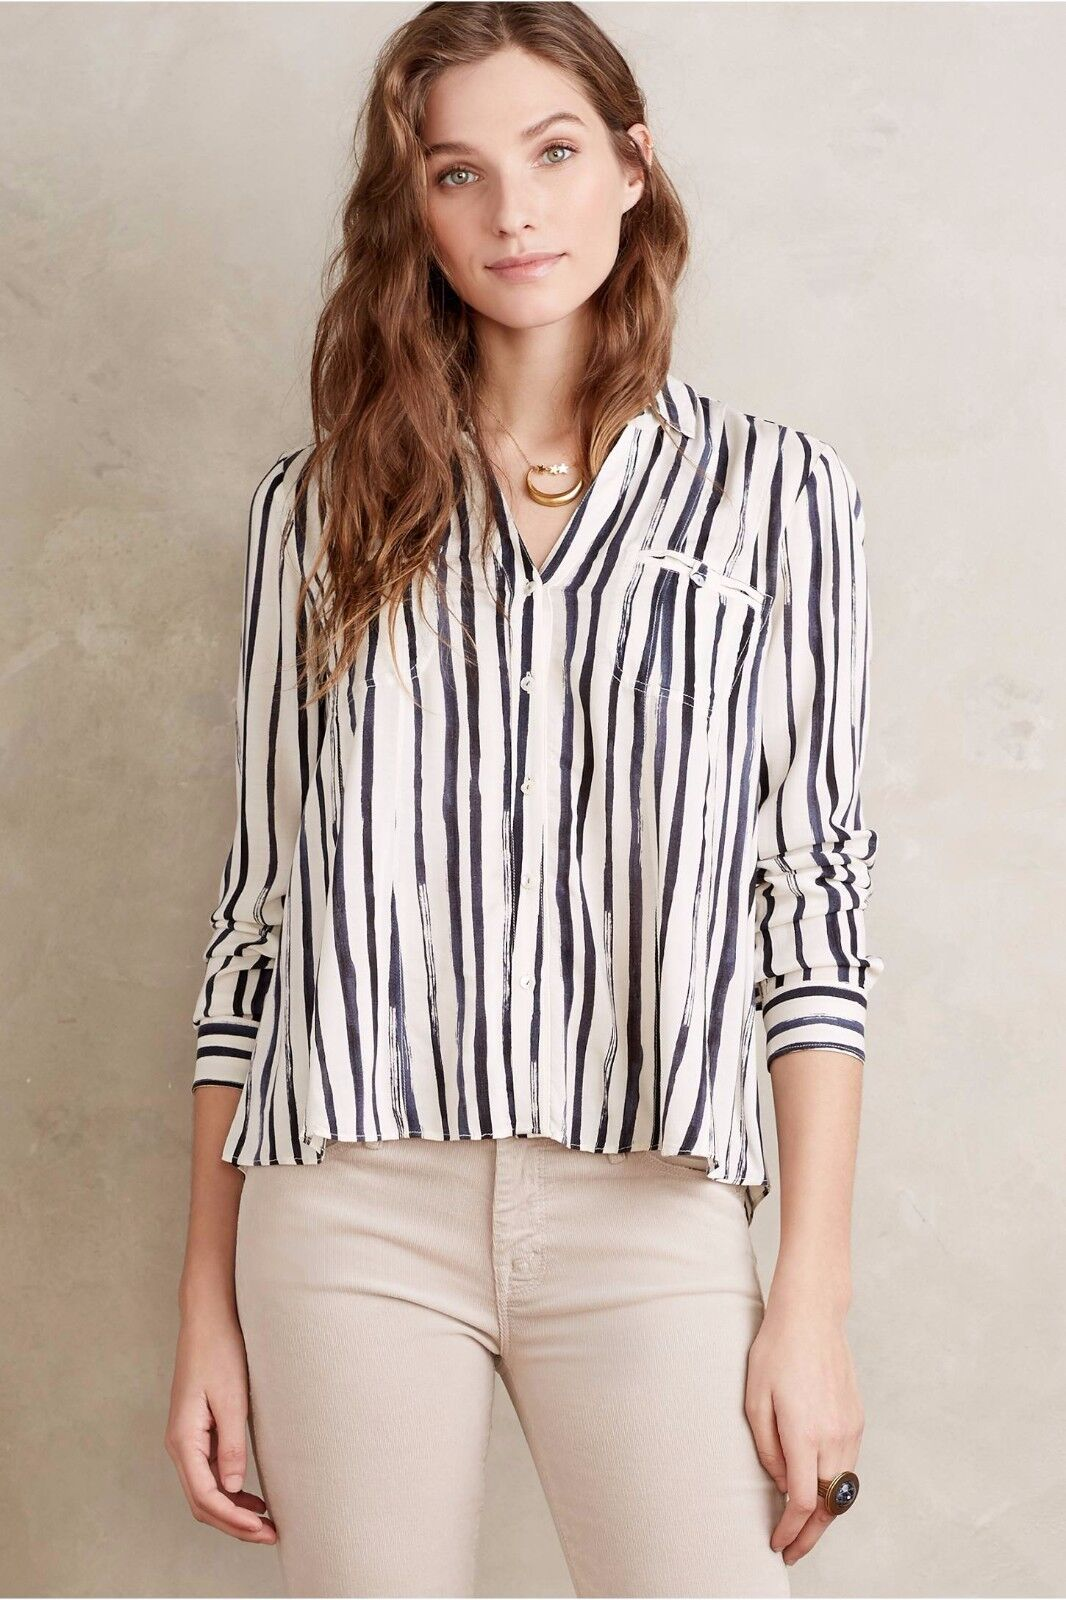 NIP ANTHROPOLOGIE by MAEVE Conversationalist Button Down, sz12, Blau stripe,